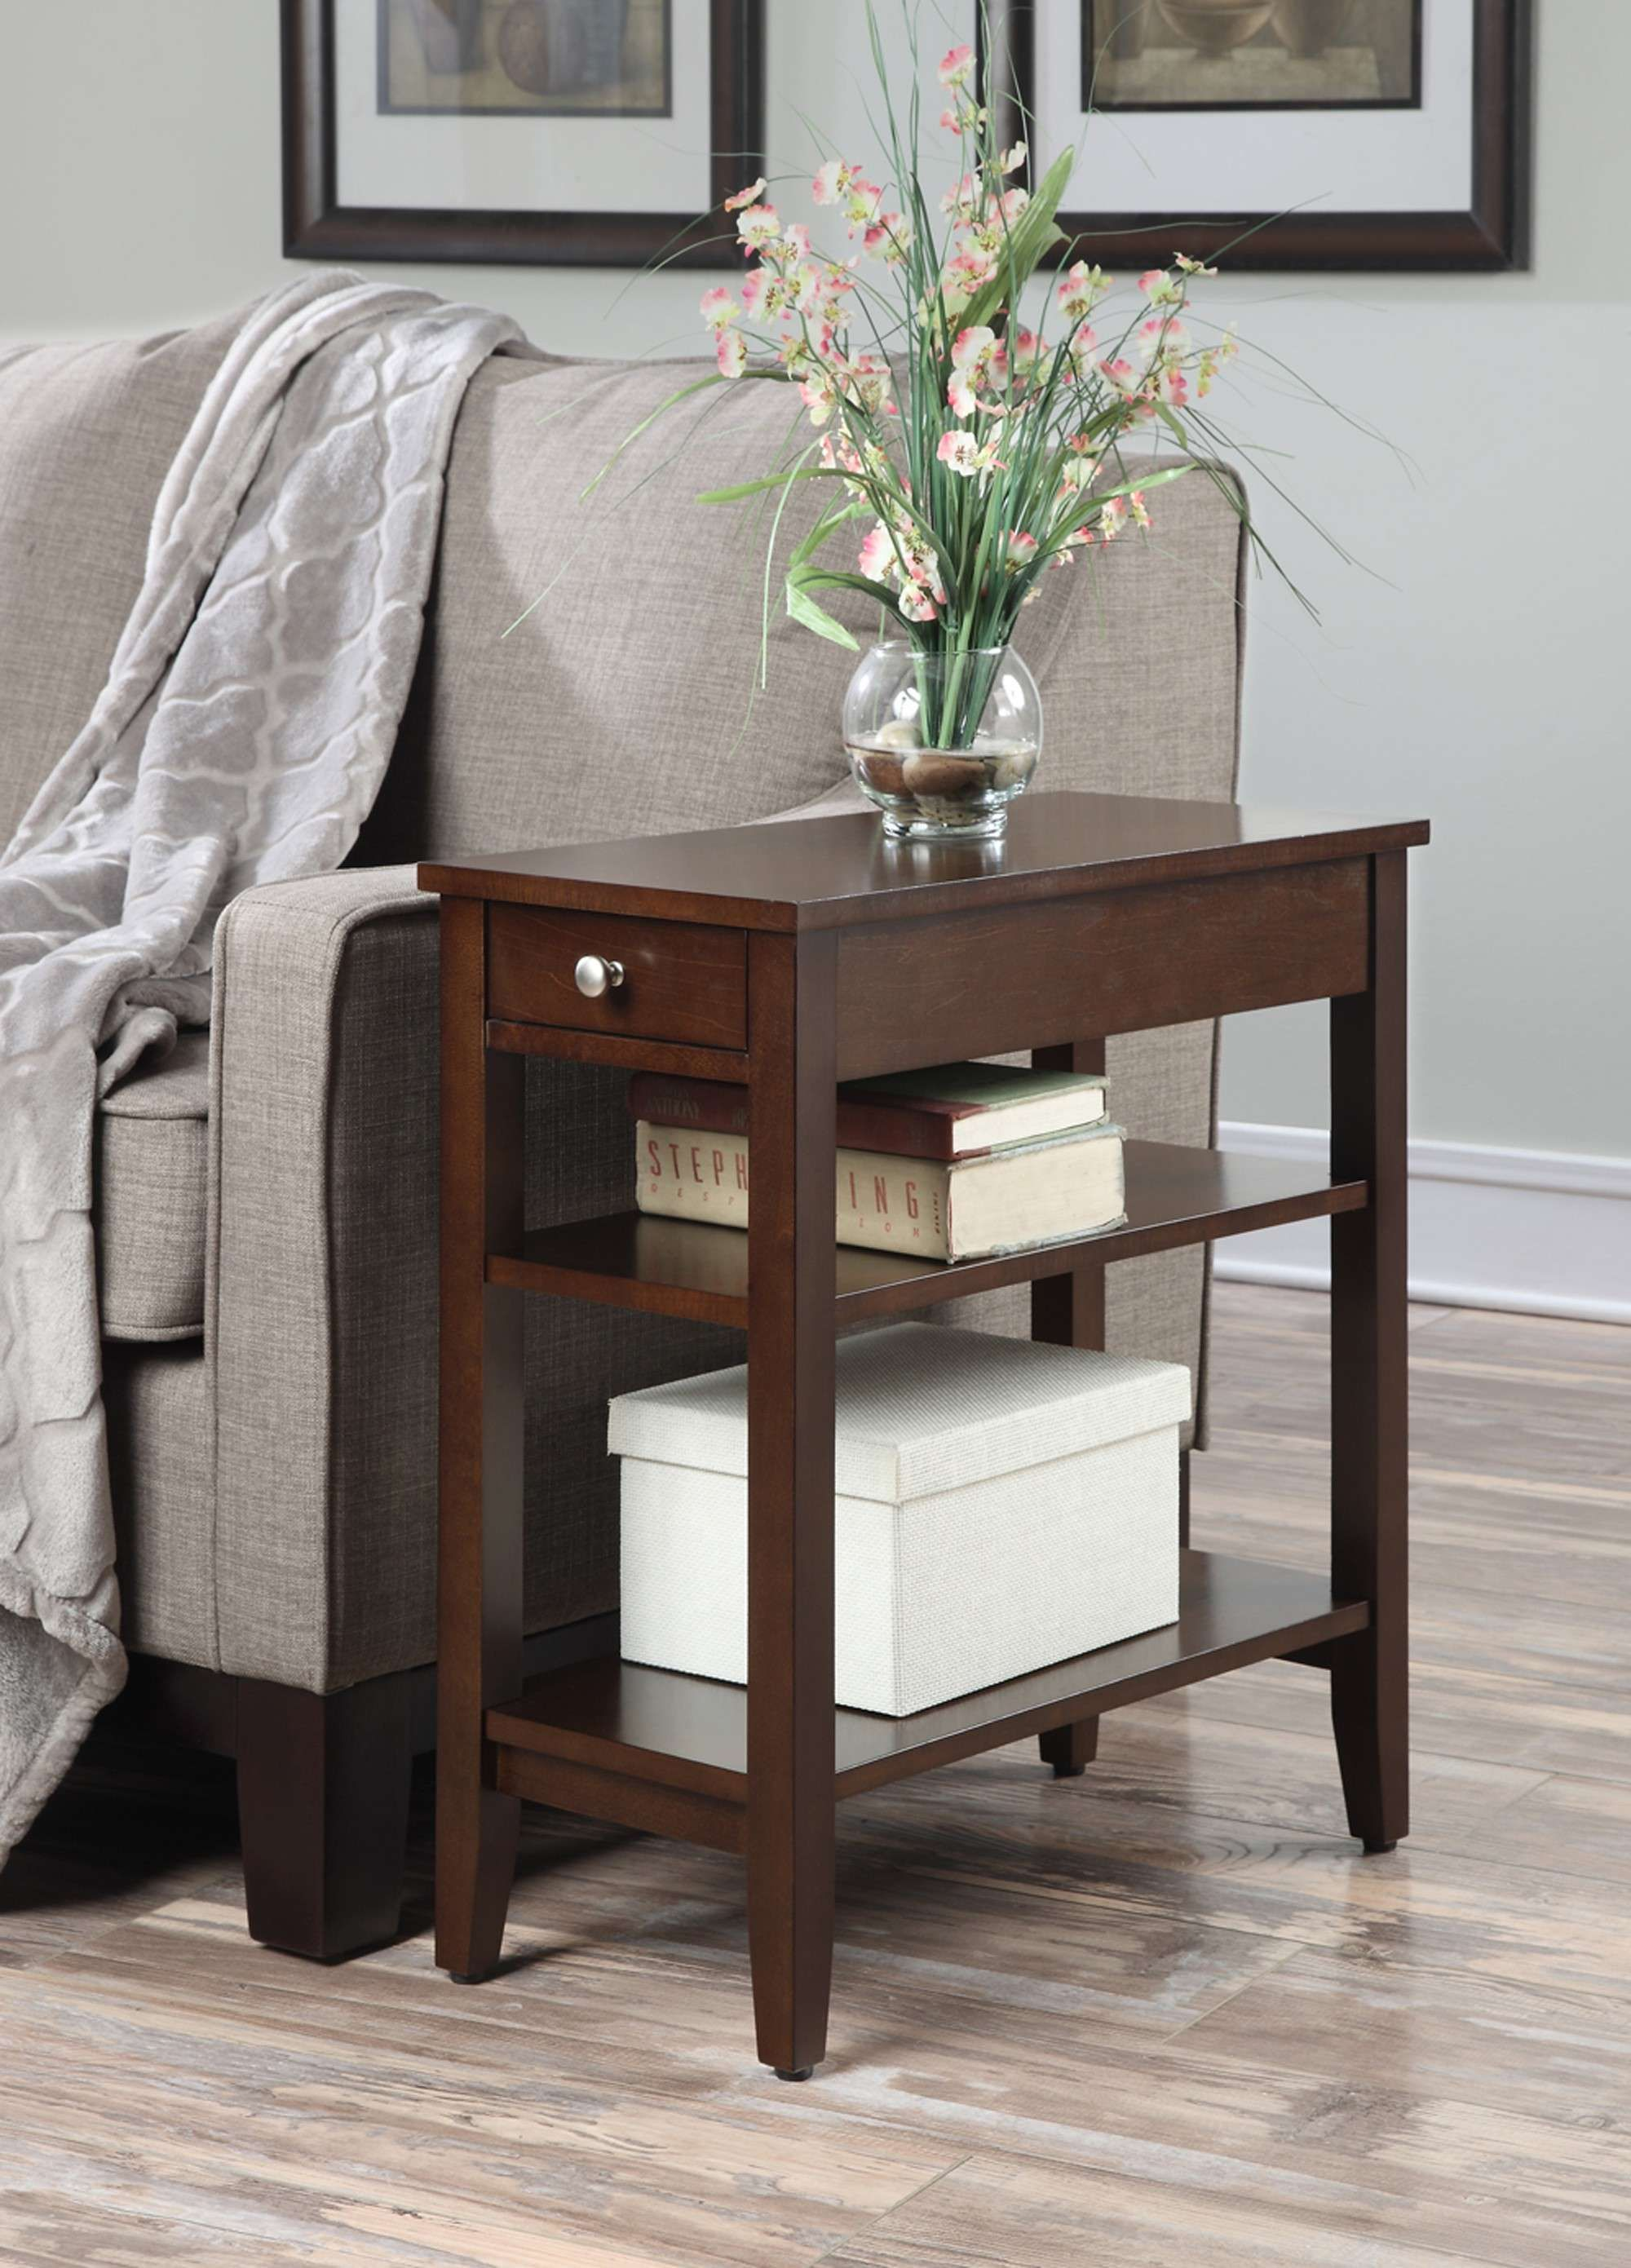 American Heritage Espresso 3 Tier End Table With Drawer End Tables With Drawers Sofa End Tables Espresso End Table